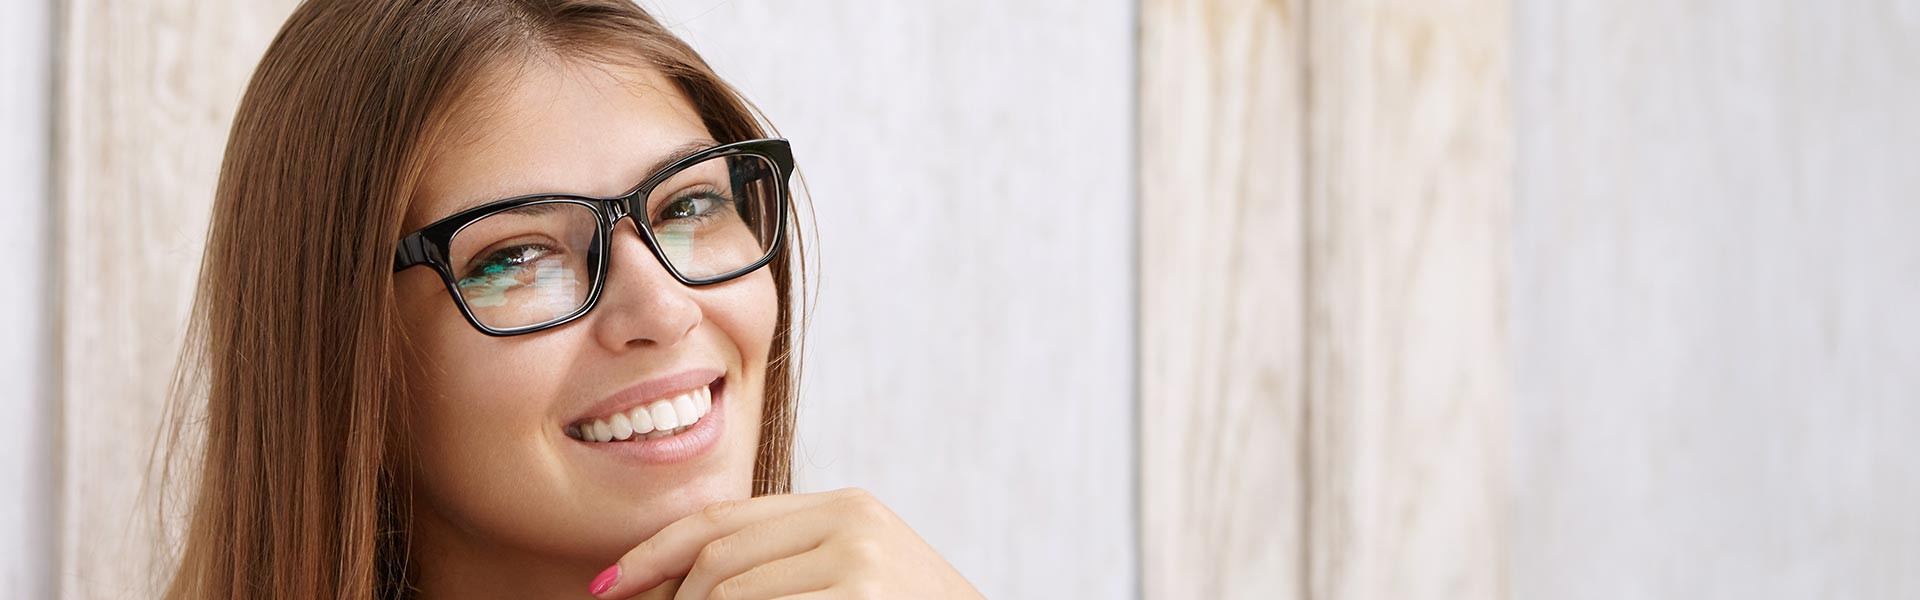 young woman wearing glasses showing perfect teeth with porcelain veneers applied in her smile